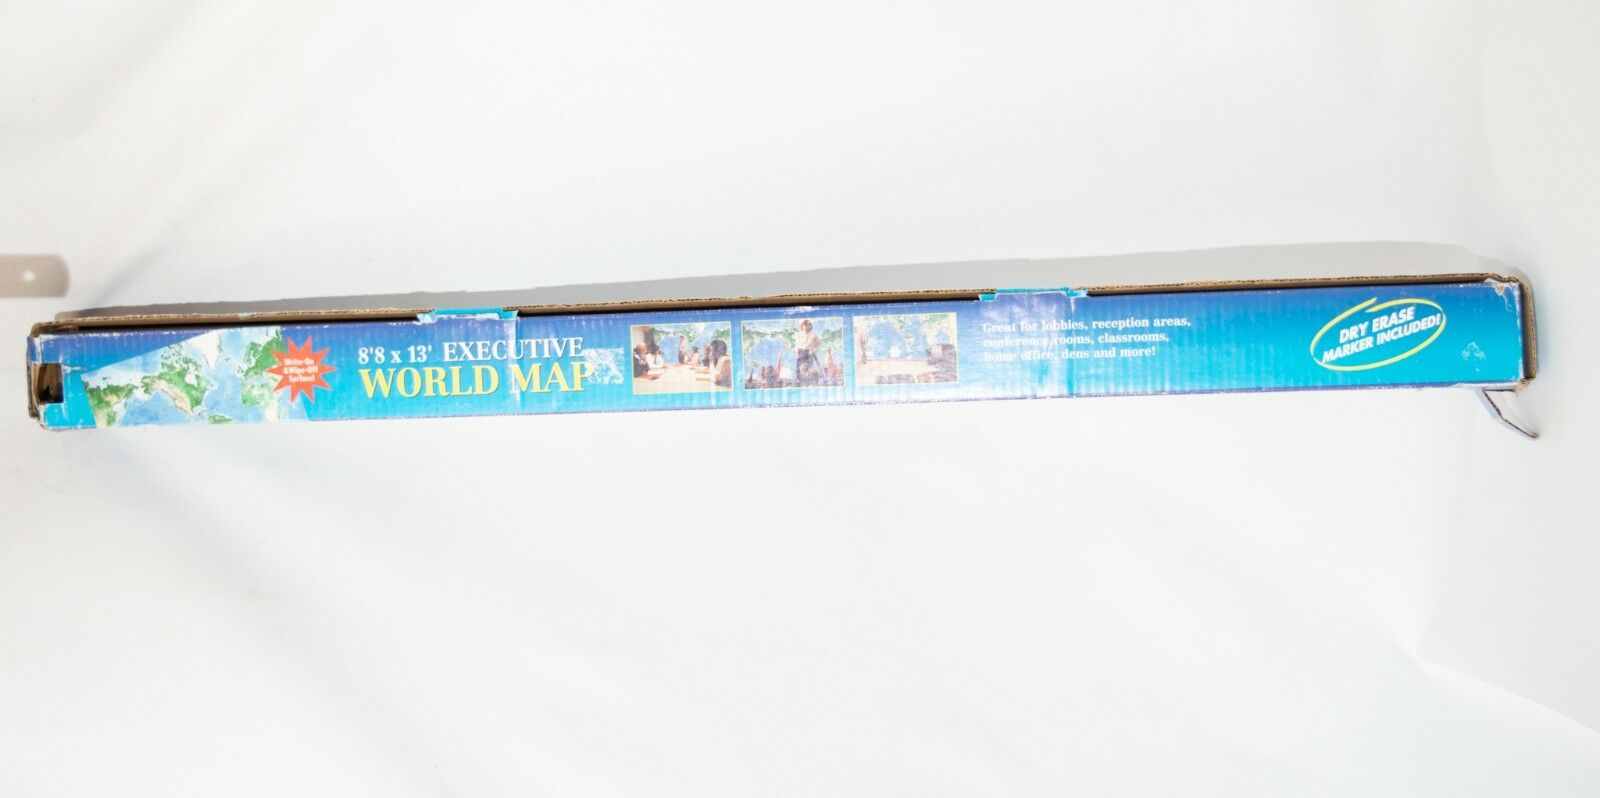 Executive World MAP GIANT WALL SIZE 8 FEET by 13 FEET Write on Write off